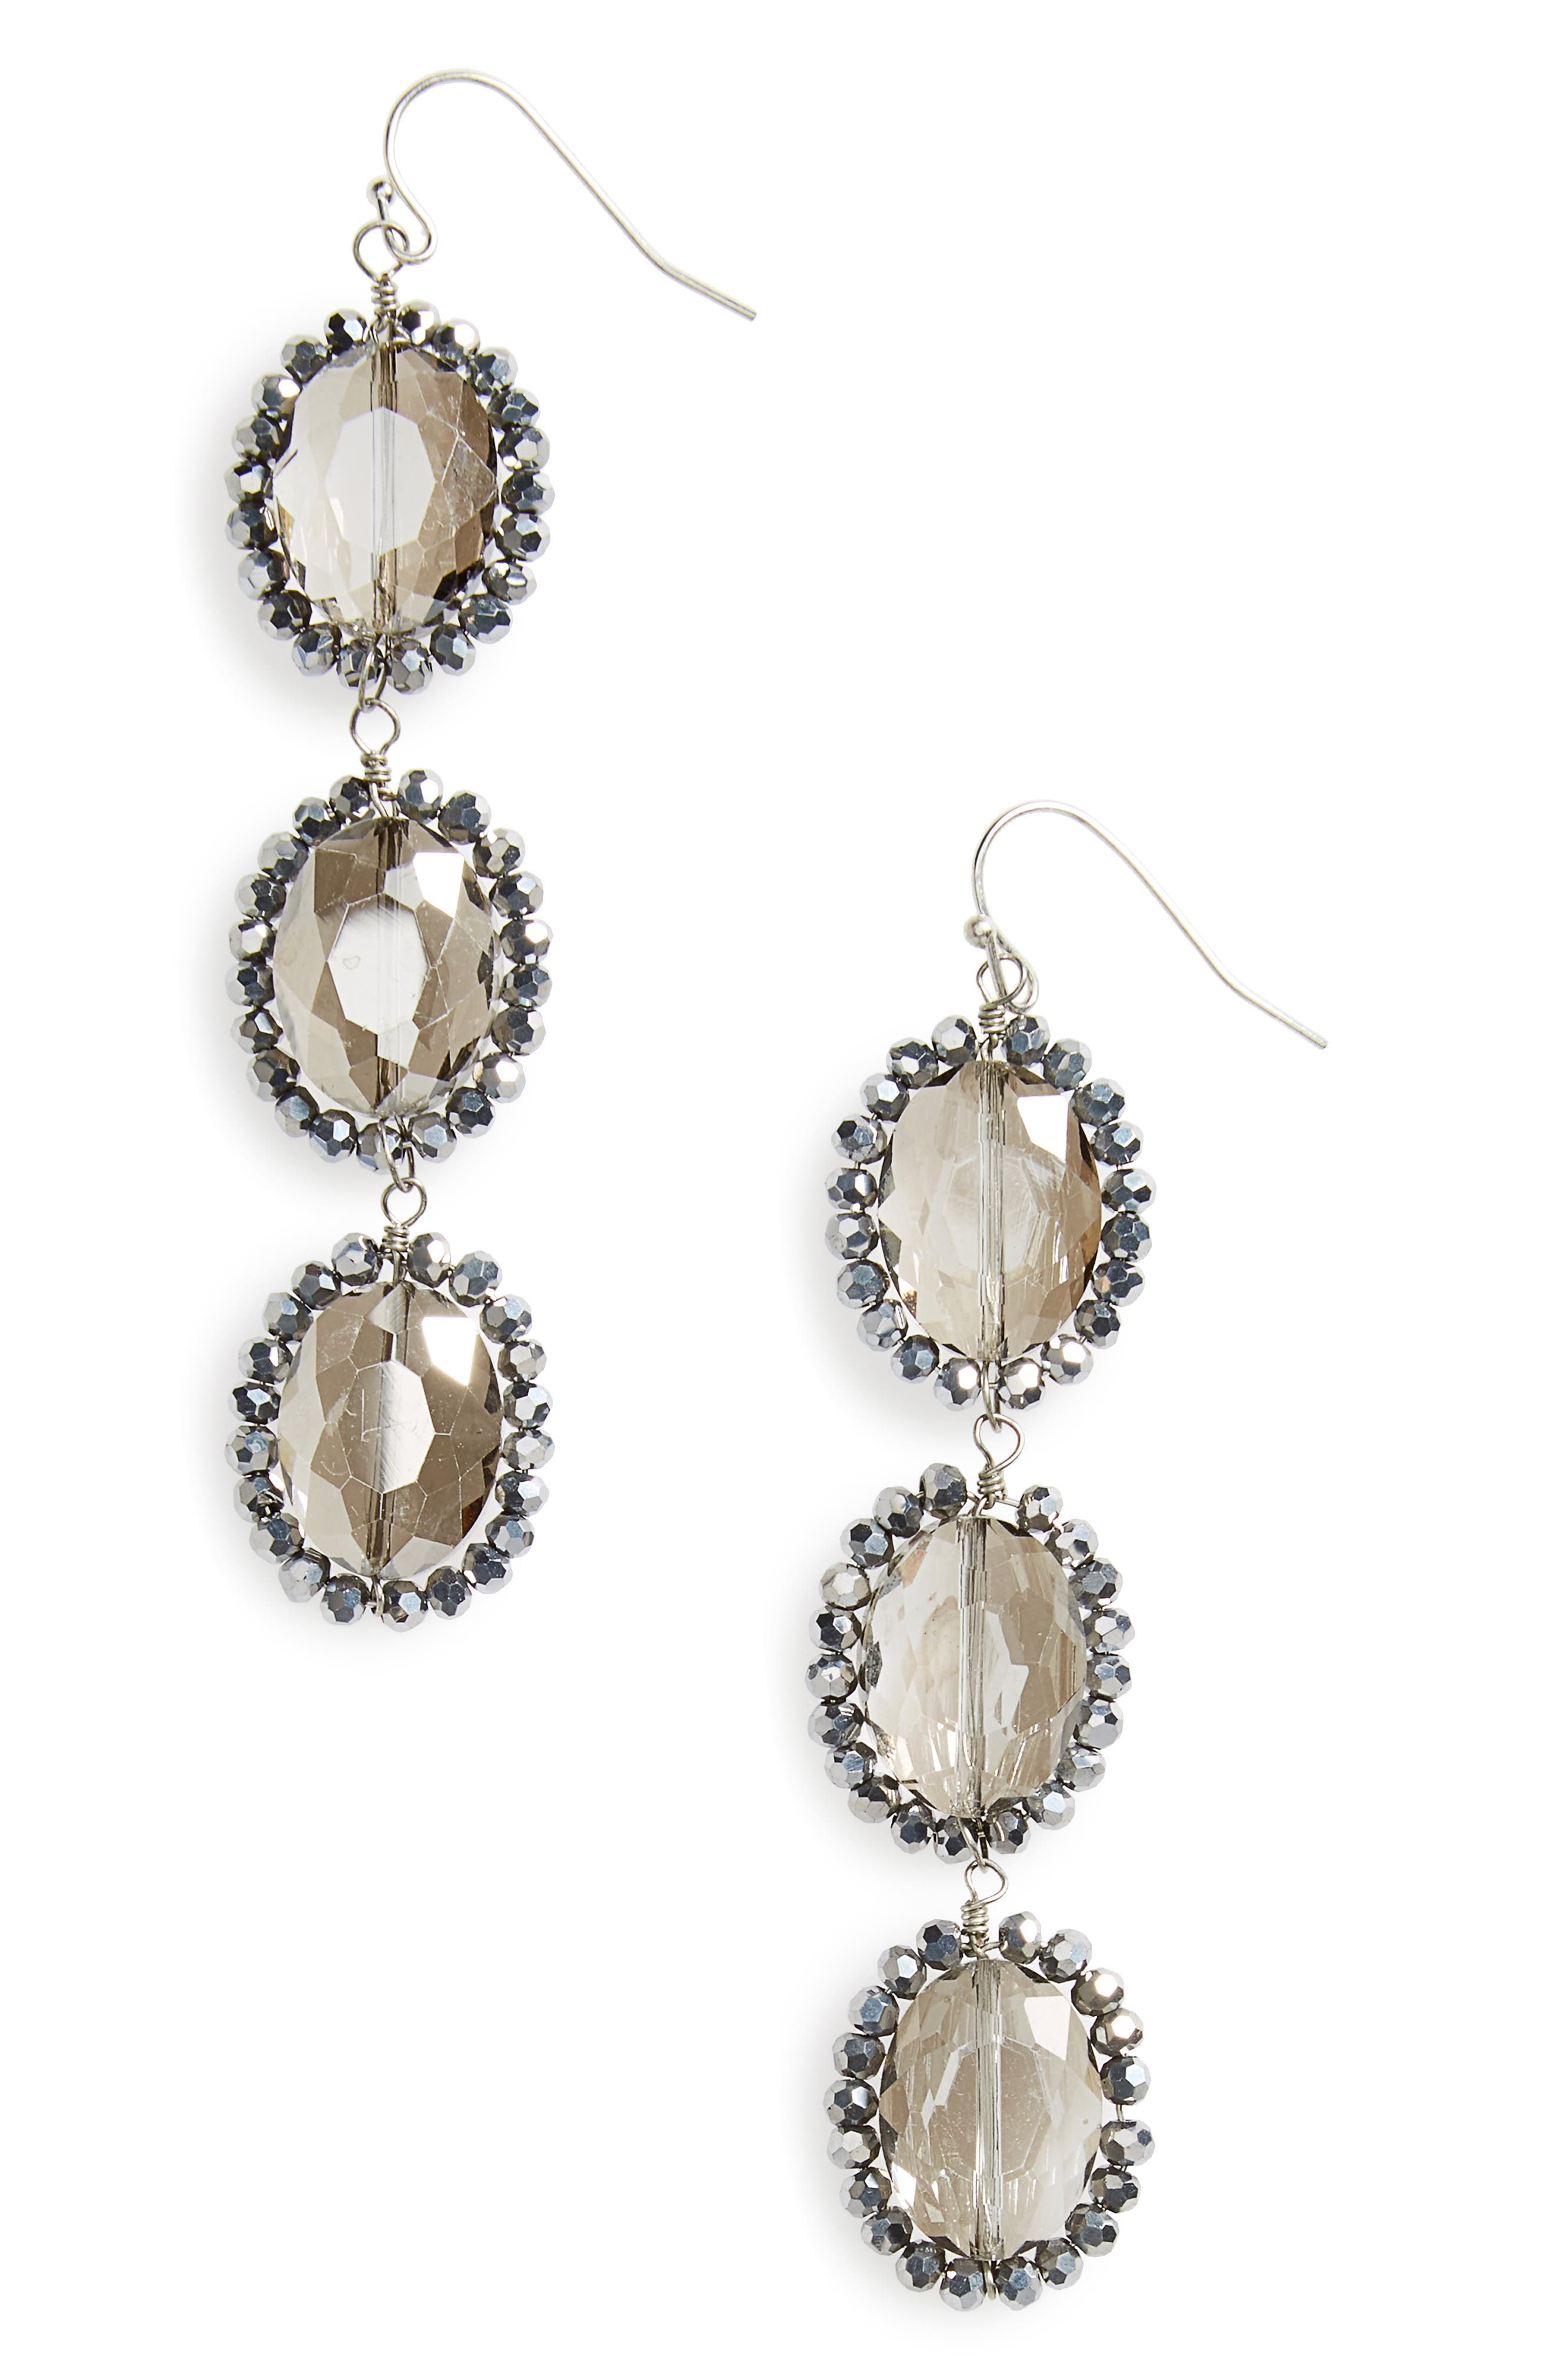 Smoky Crystal Drop Earrings,                             Main thumbnail 1, color,                             022